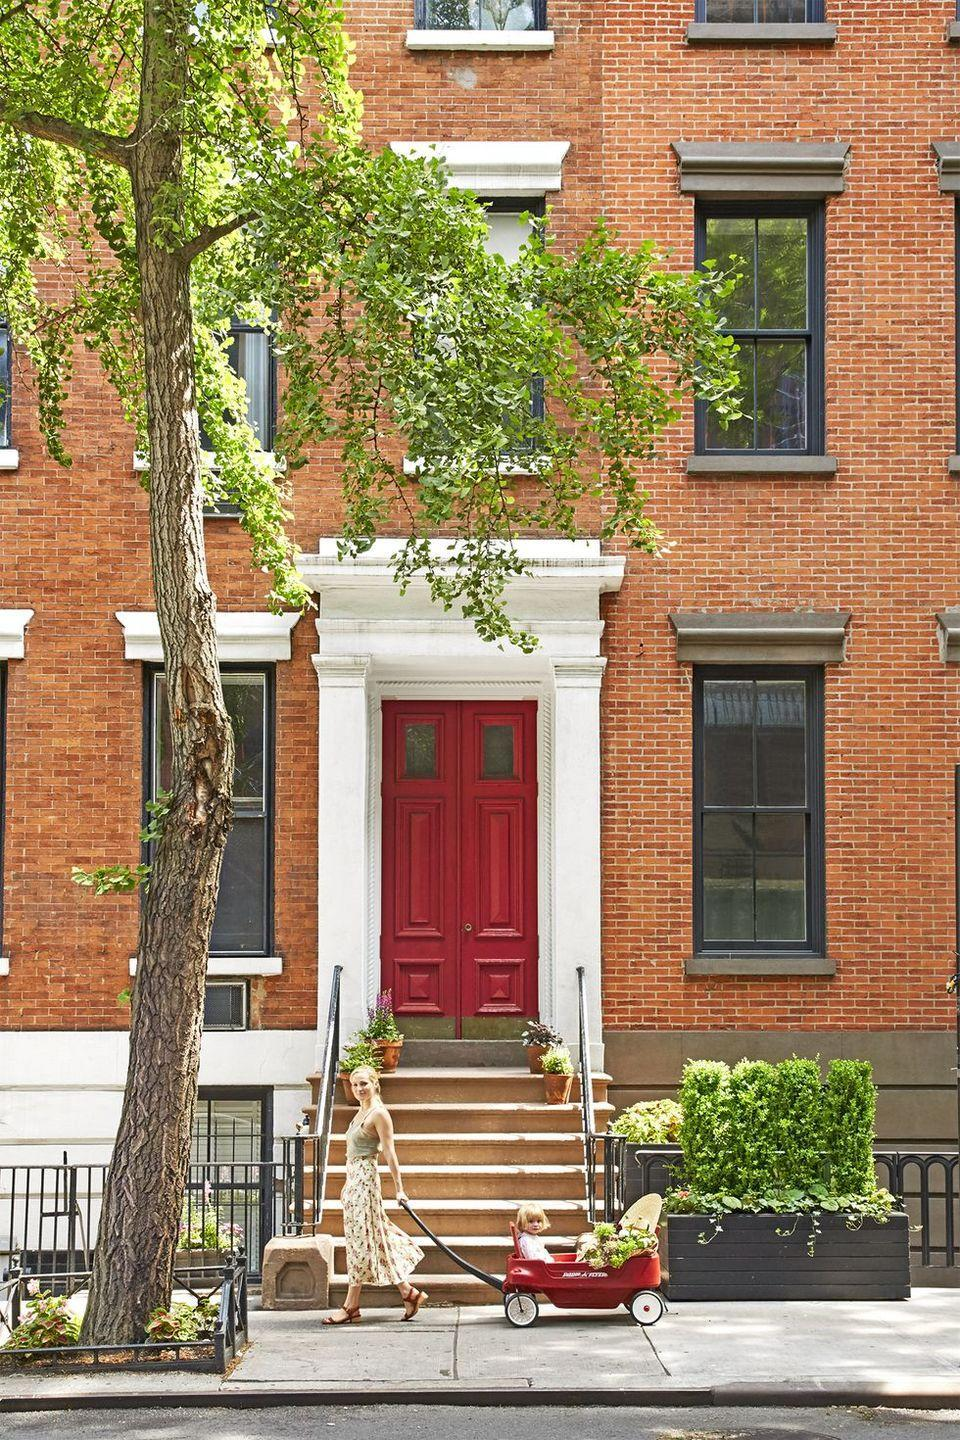 """<p>Your home will be the envy of your neighbors by painting your front door a sleek shade that complements its ornate exterior.</p><p><a class=""""link rapid-noclick-resp"""" href=""""https://store.benjaminmoore.com/storefront/color-samples/paint-color-samples-1-pint/prodPRM01A.html?sbcColor=2004_10"""" rel=""""nofollow noopener"""" target=""""_blank"""" data-ylk=""""slk:SHOP RED PAINT"""">SHOP RED PAINT</a></p>"""